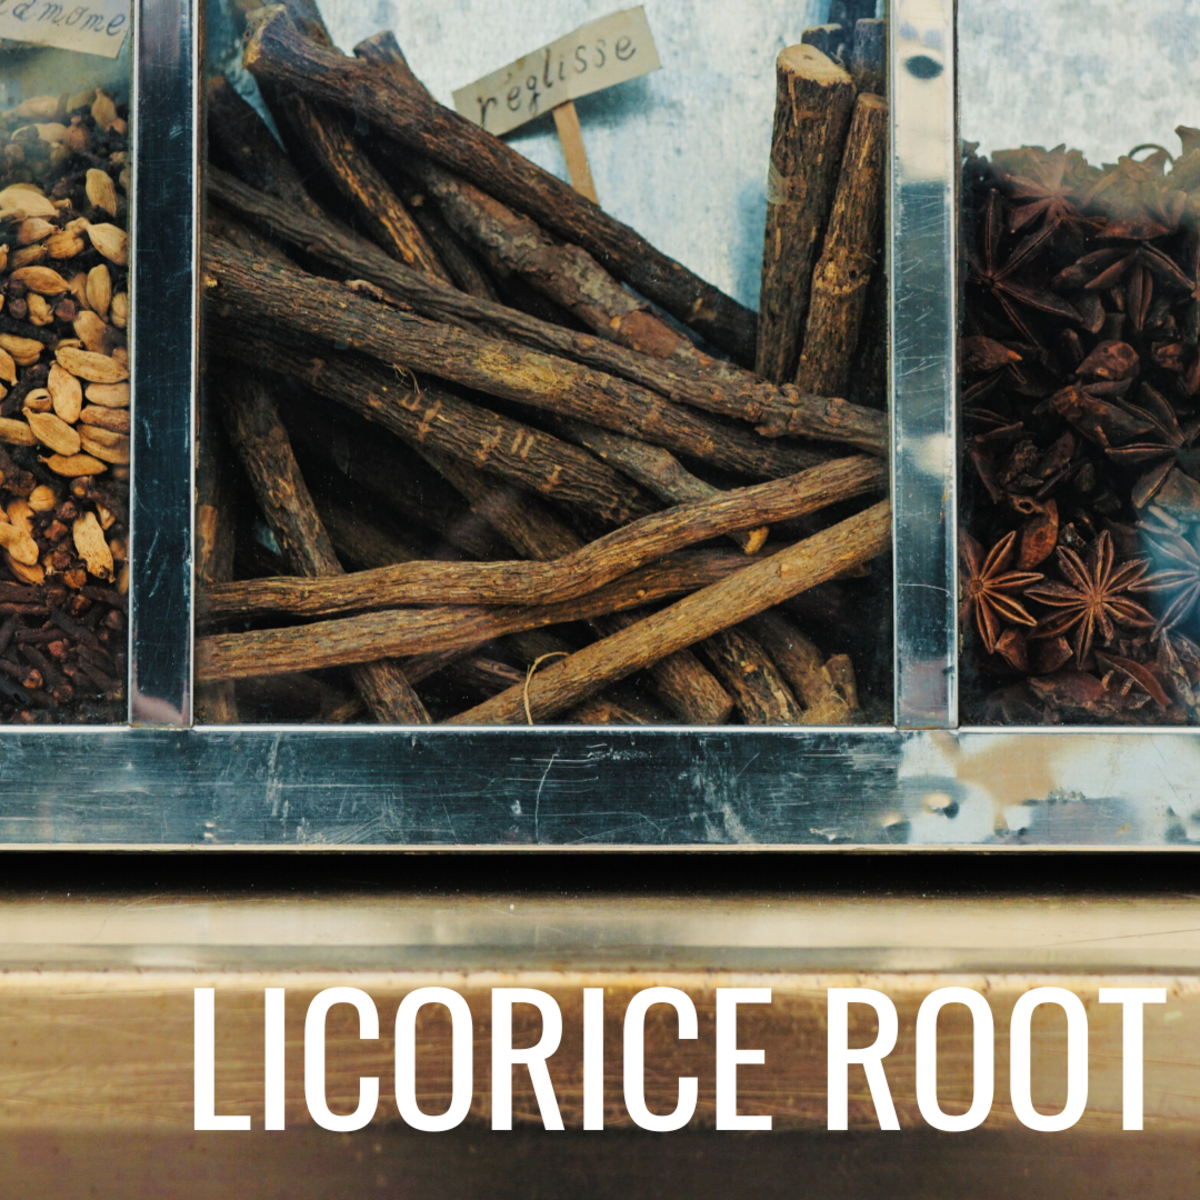 Licorice root has been used for its medicinal properties for hundreds of years.